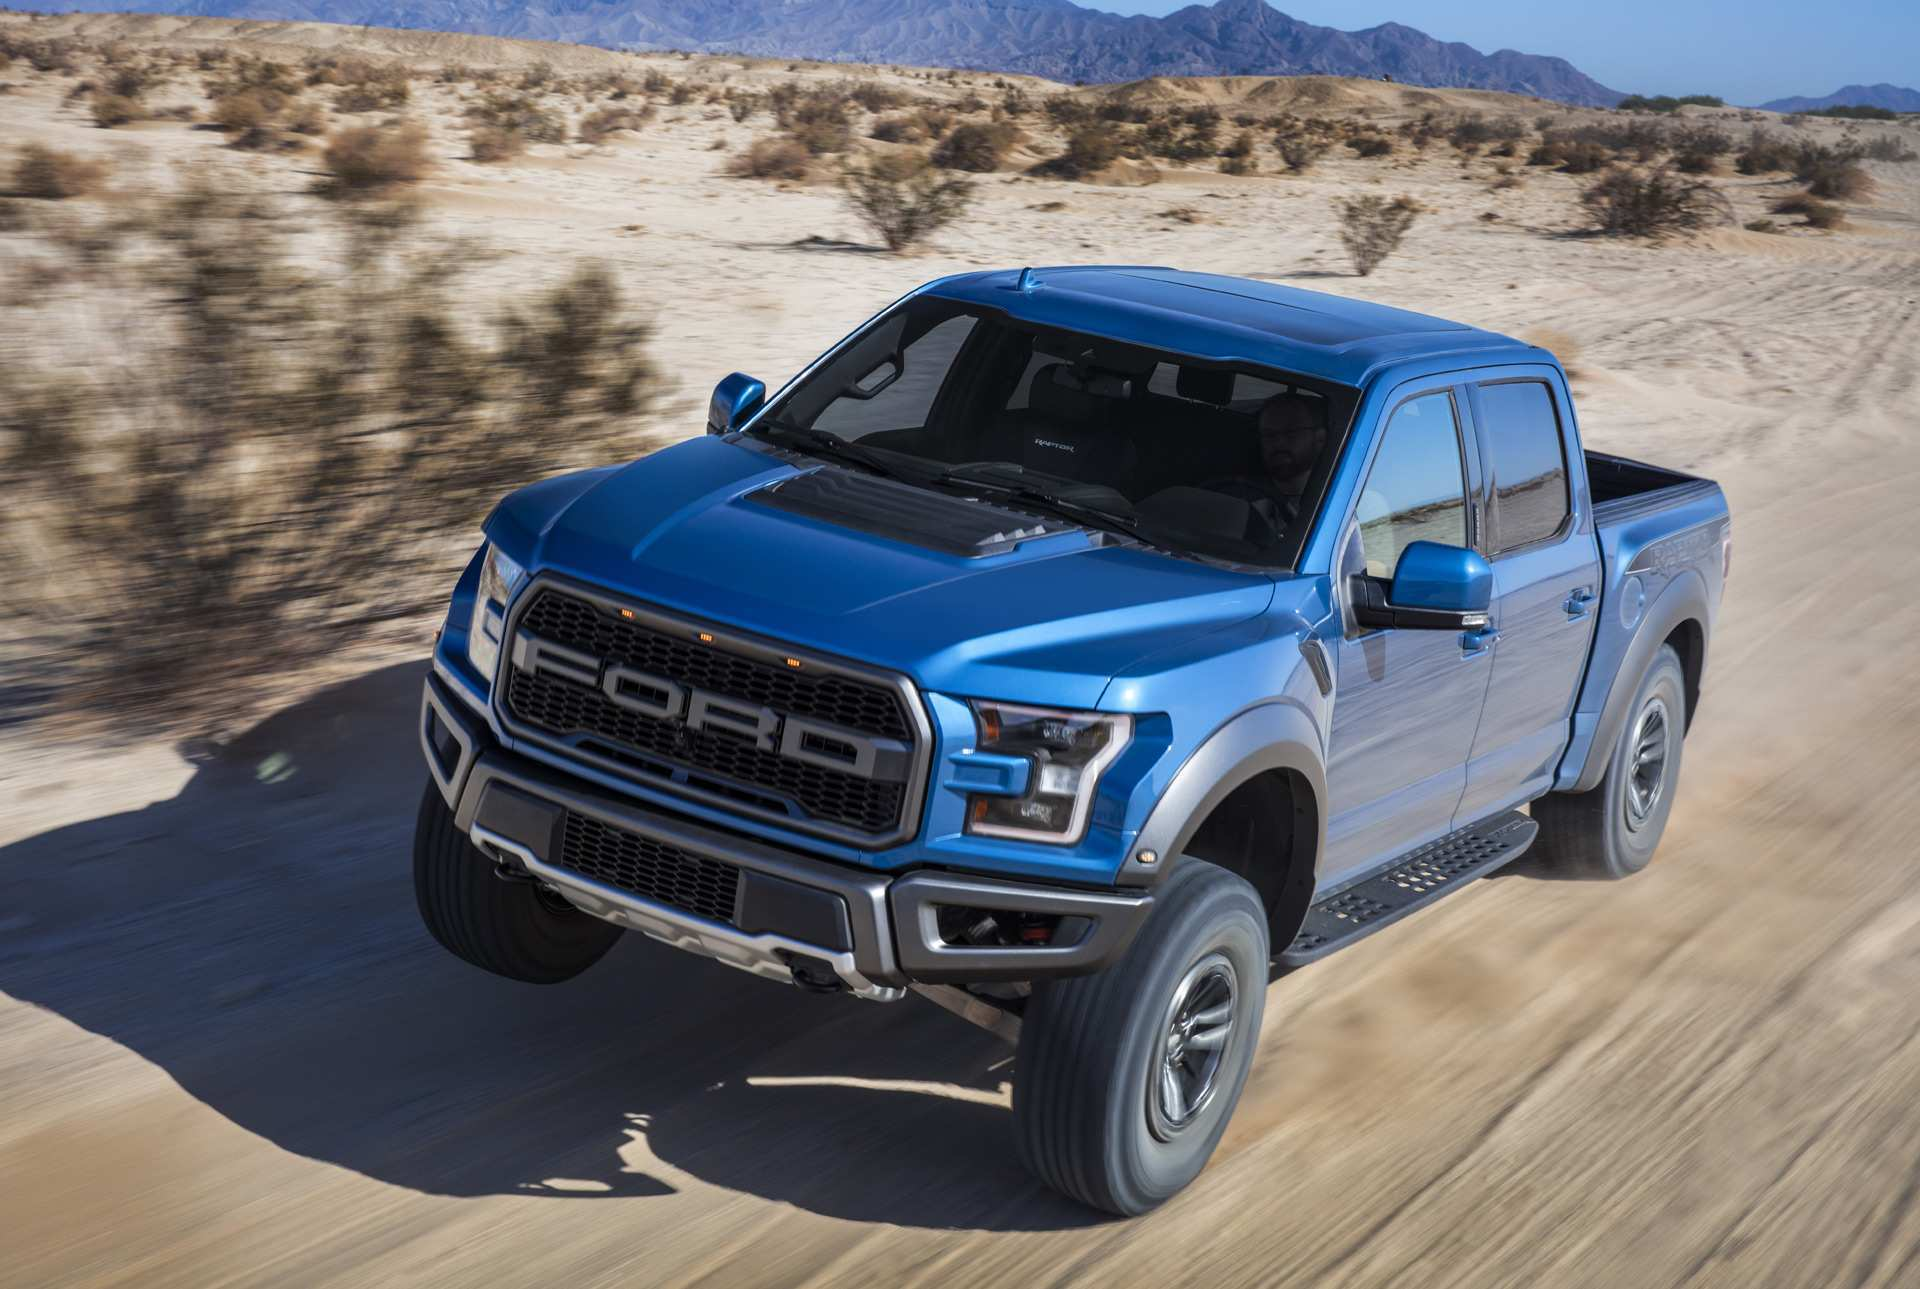 80 The 2020 Ford F150 Raptor Redesign